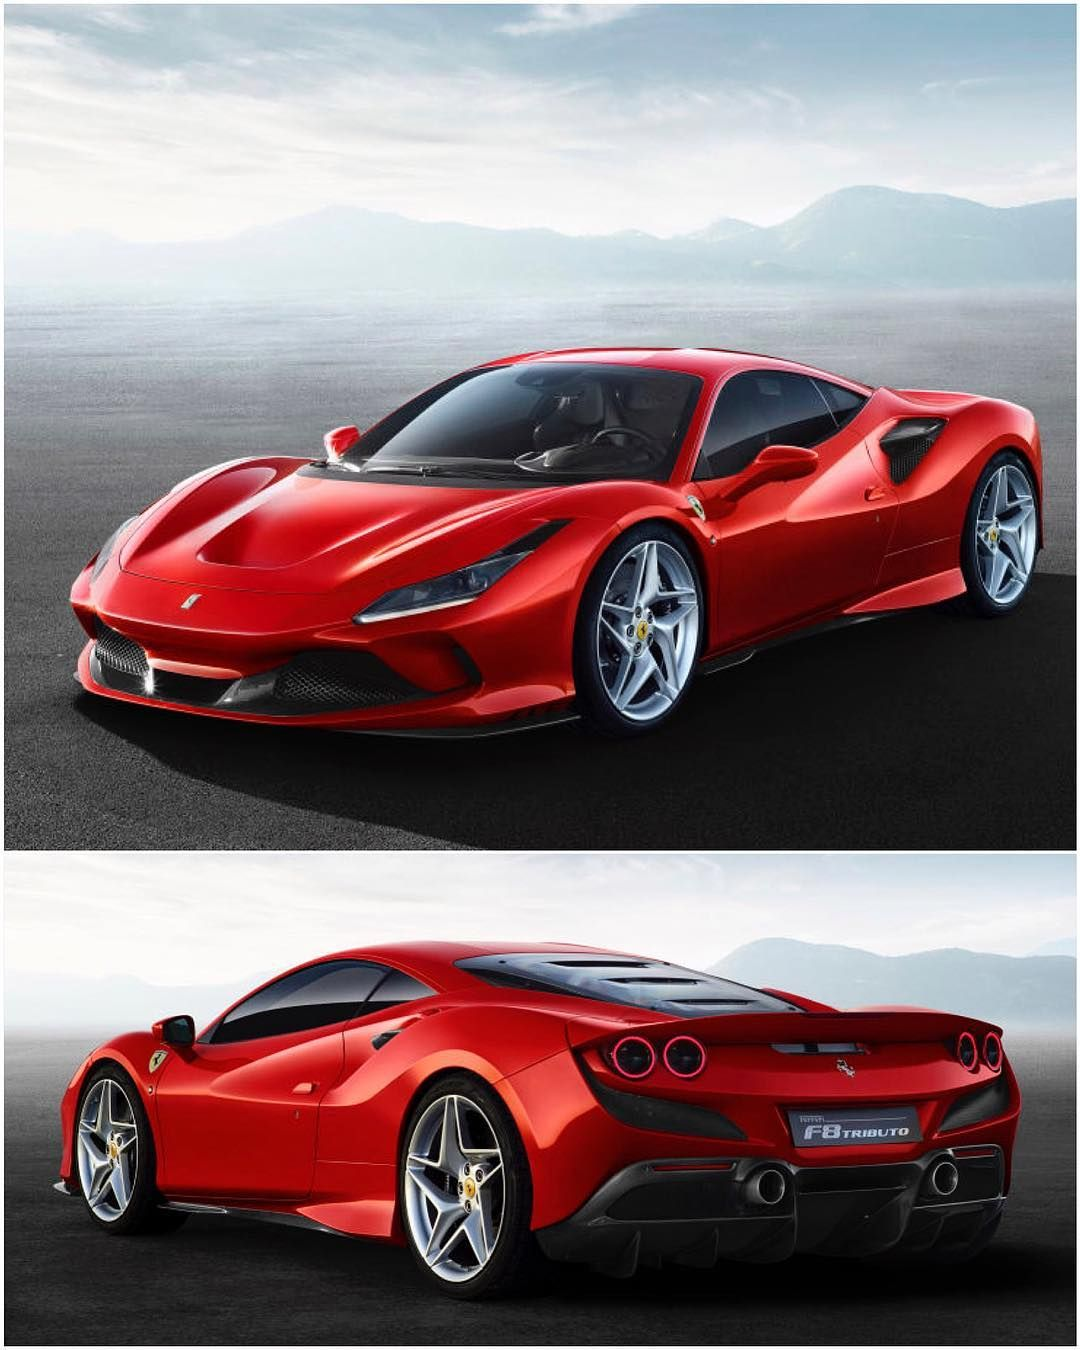 Ferrari F8 Wheels: What Do You Think About The New Ferrari F8 Tributo?